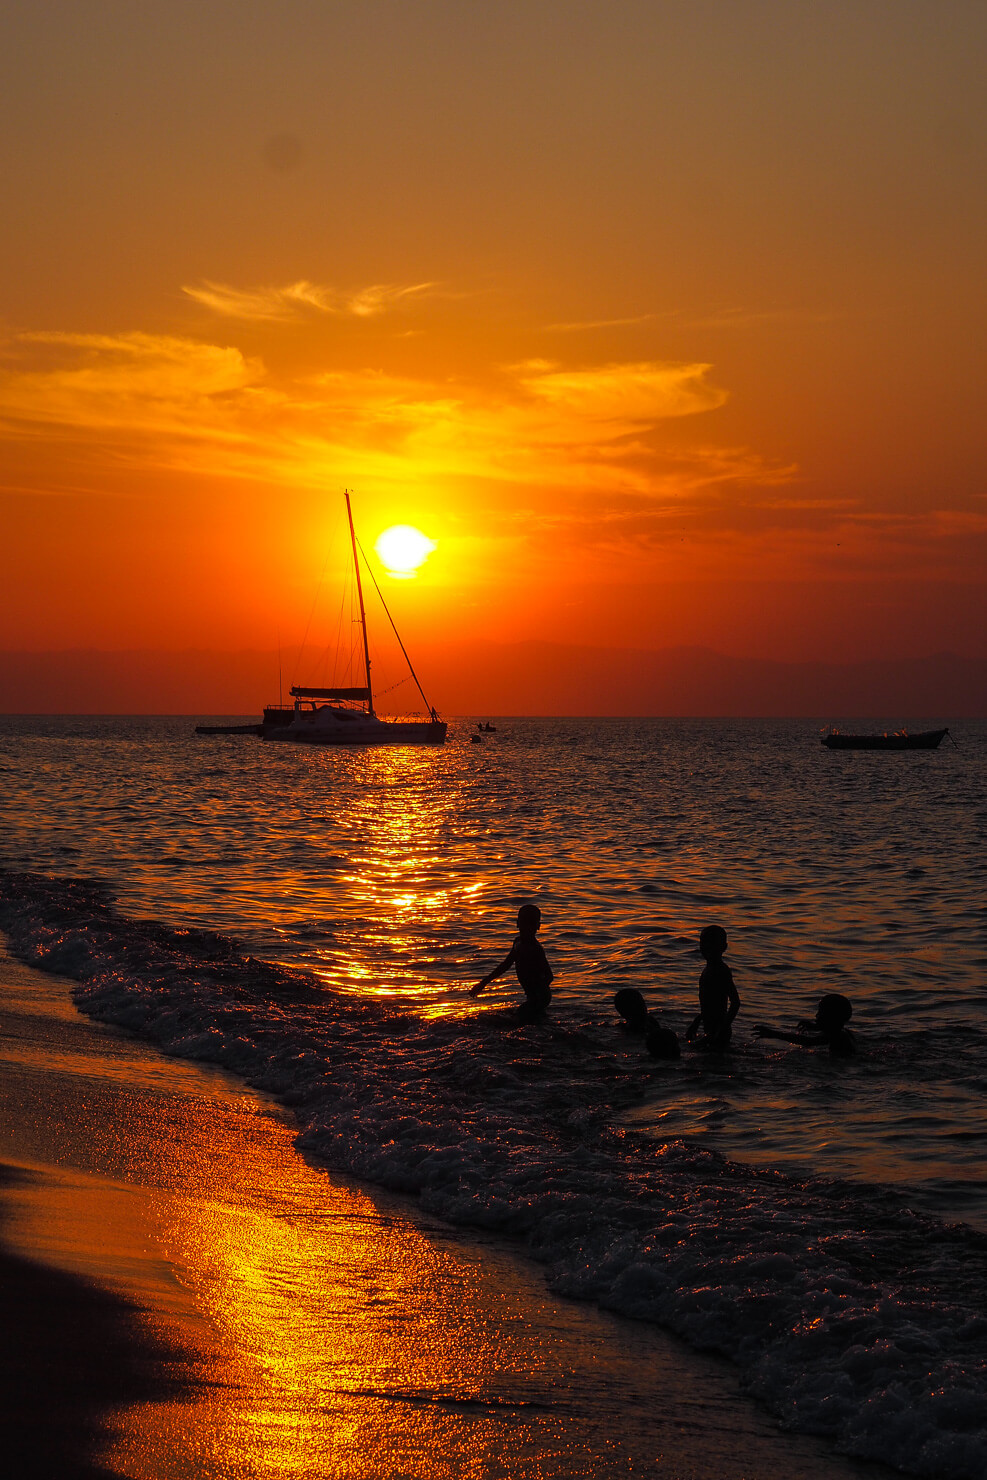 Sunset at Cape Maclear, Malawi